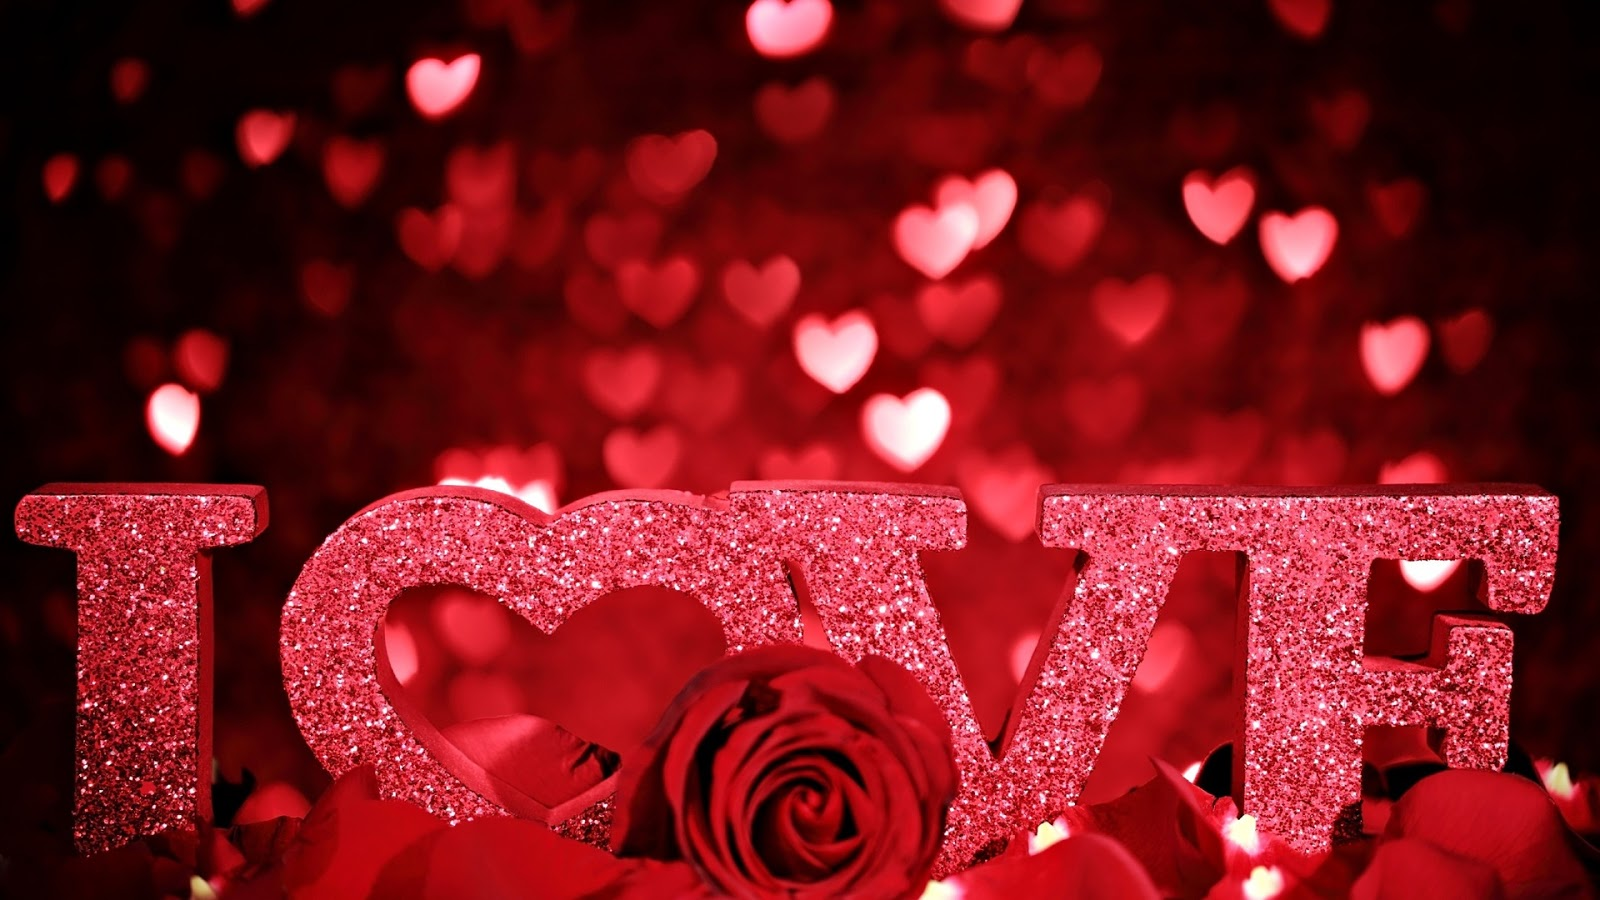 Happy Valentines Day 4k Hd Images For Whatsapp Facebook Profile